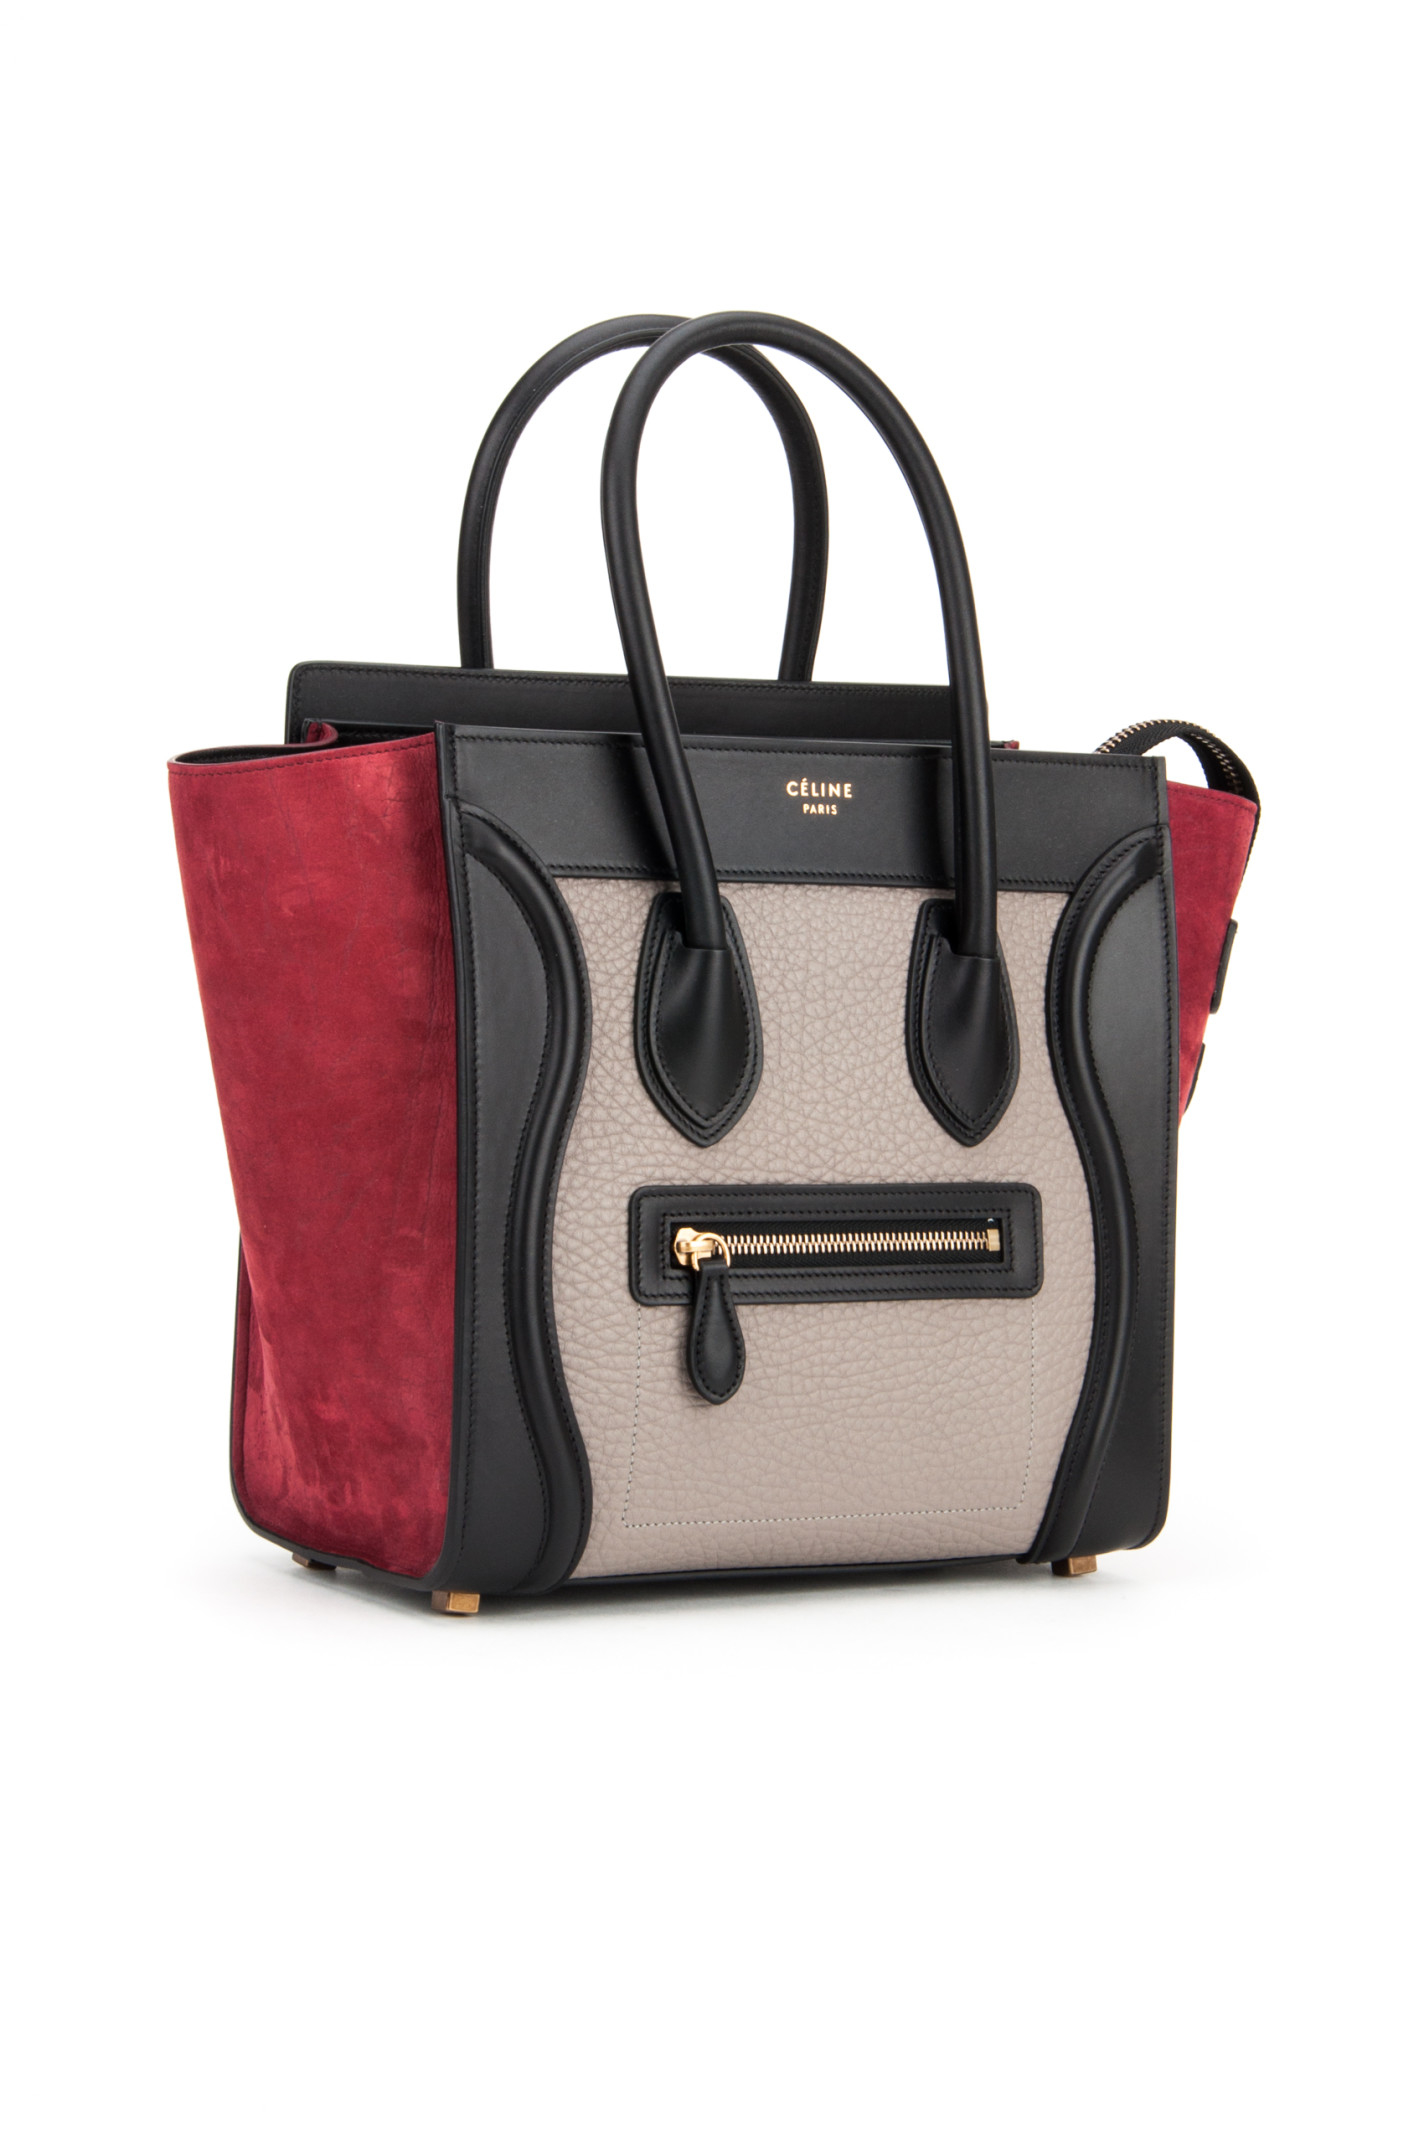 C¨¦line Multicolor Luggage Bag in Red (DARK RUBY) | Lyst